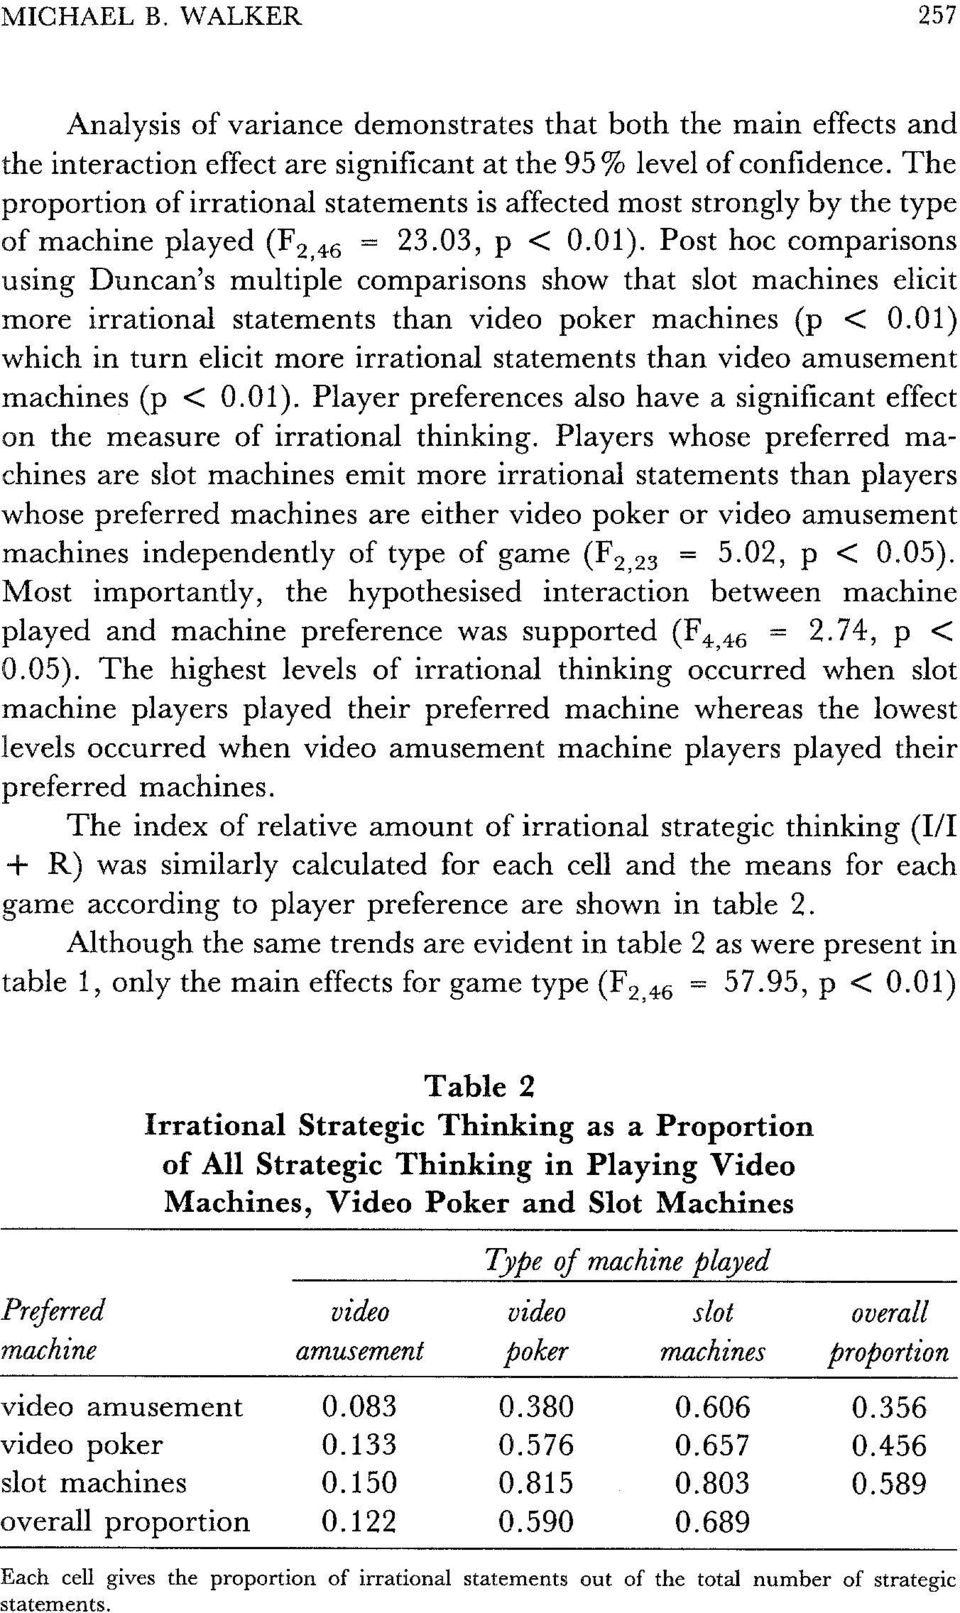 Post hoc comparisons using Duncan's multiple comparisons show that slot machines elicit more irrational statements than video poker machines (p < 0.